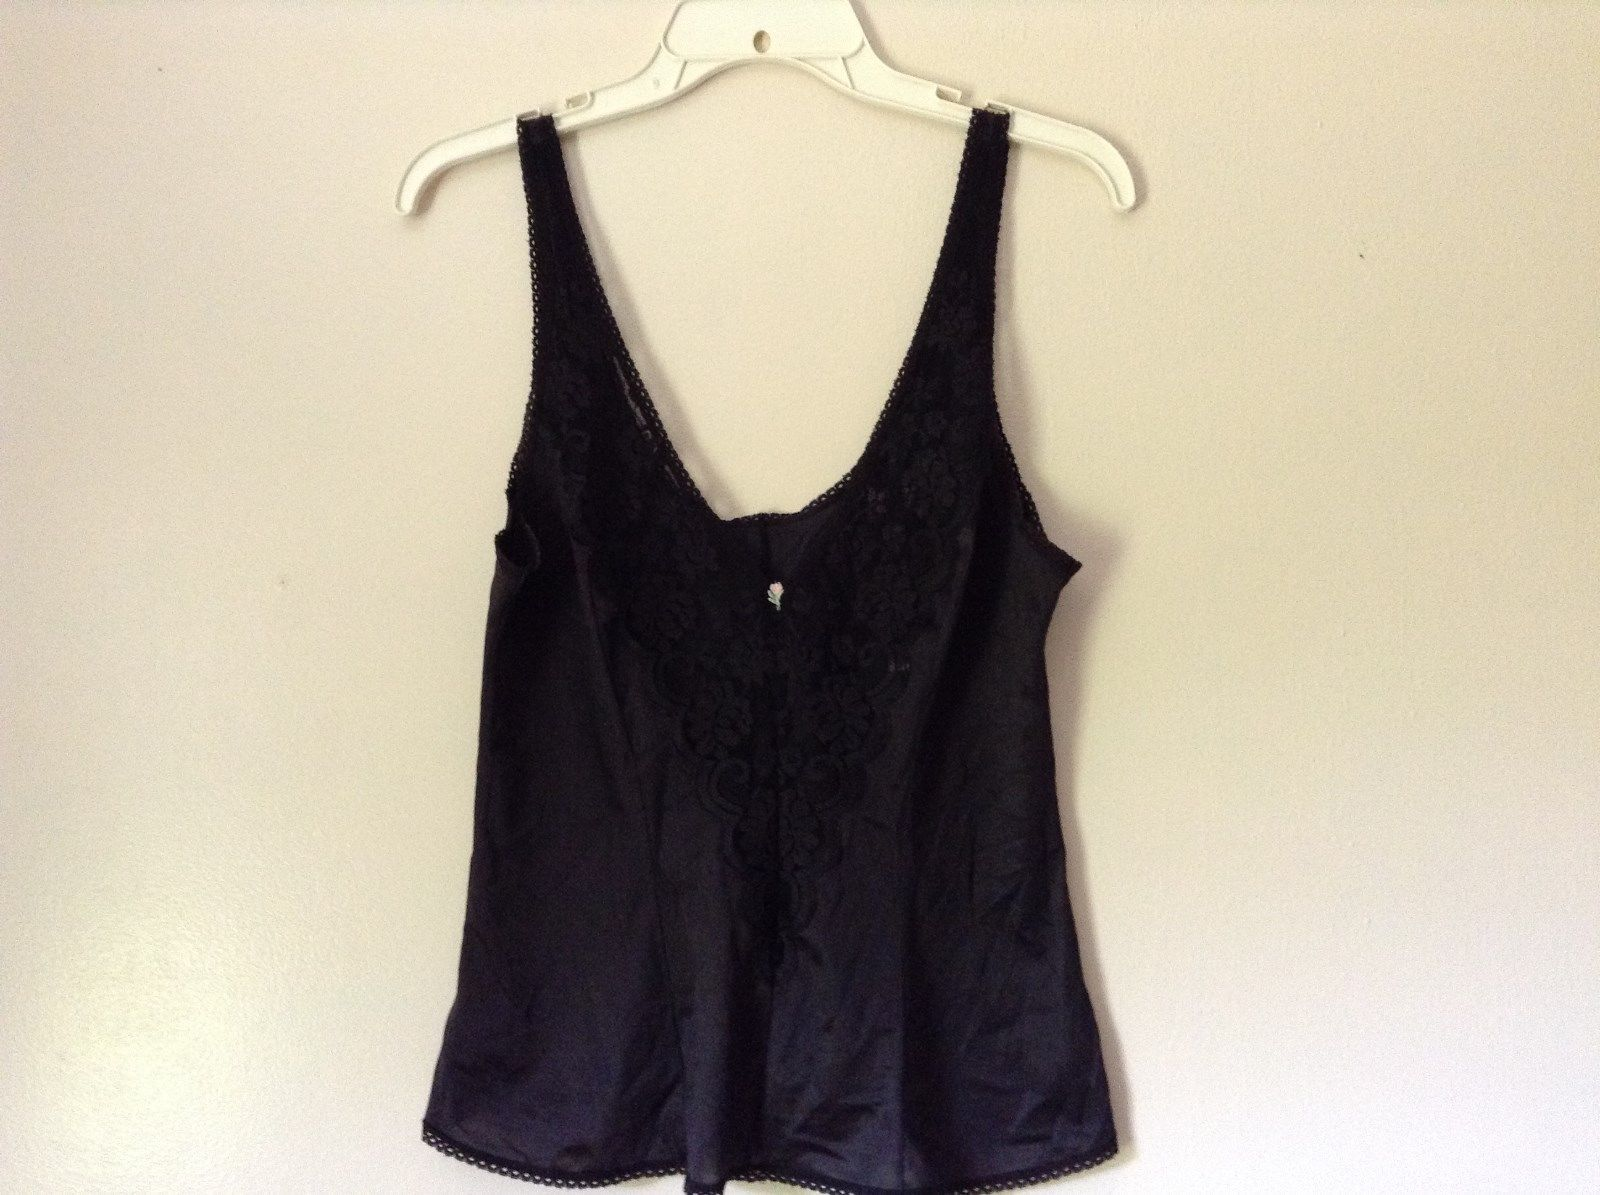 J C Penny Fantasia Lingerie Night Black Camisole Top Laced Rose on Front